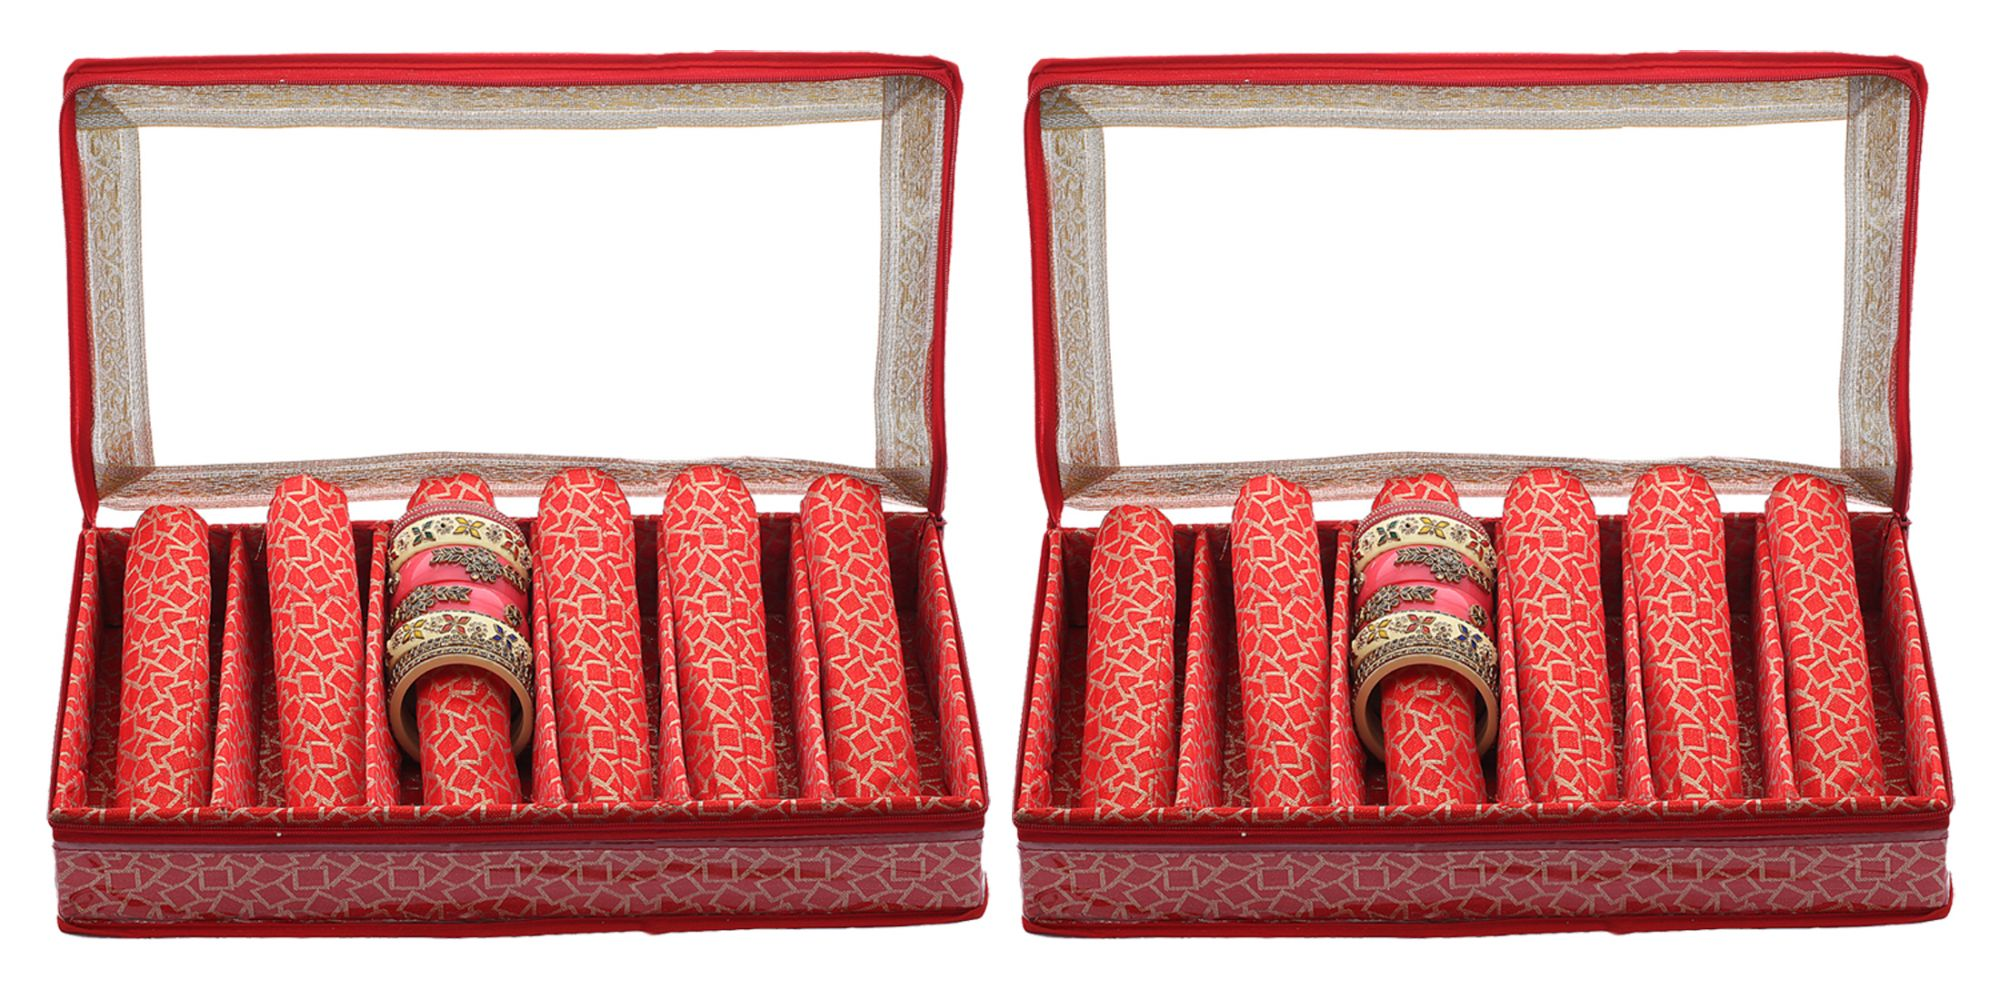 Kuber Industries Brocade Hardboard 2 Pieces Six Rod Bangle Box (Red) - CTKTC22903